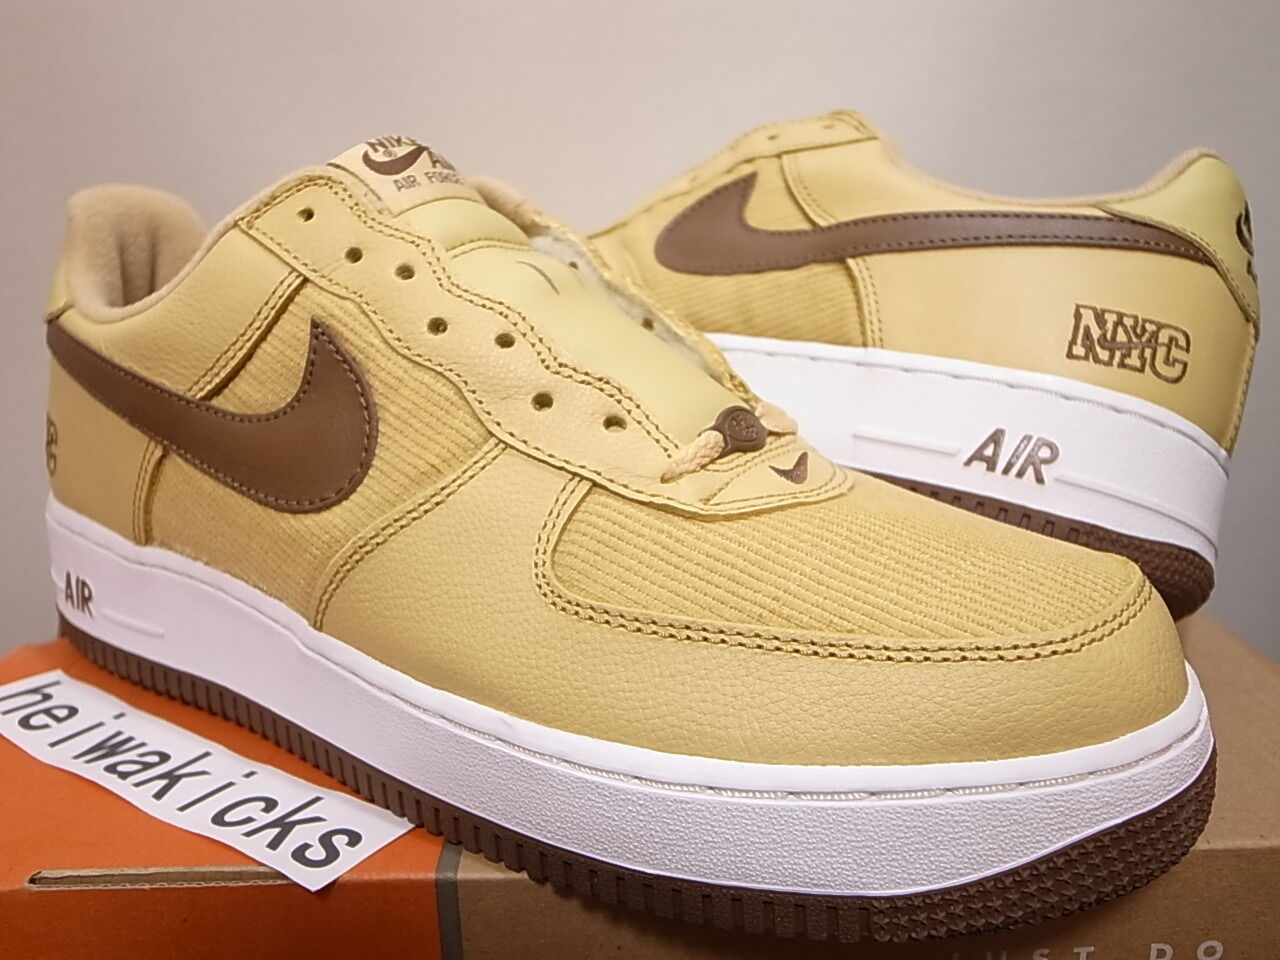 2003 NIKE AIR FORCE 1 NYC CORDUROY GOLD DUST/BISON-blanc 306509-721 Taille 11